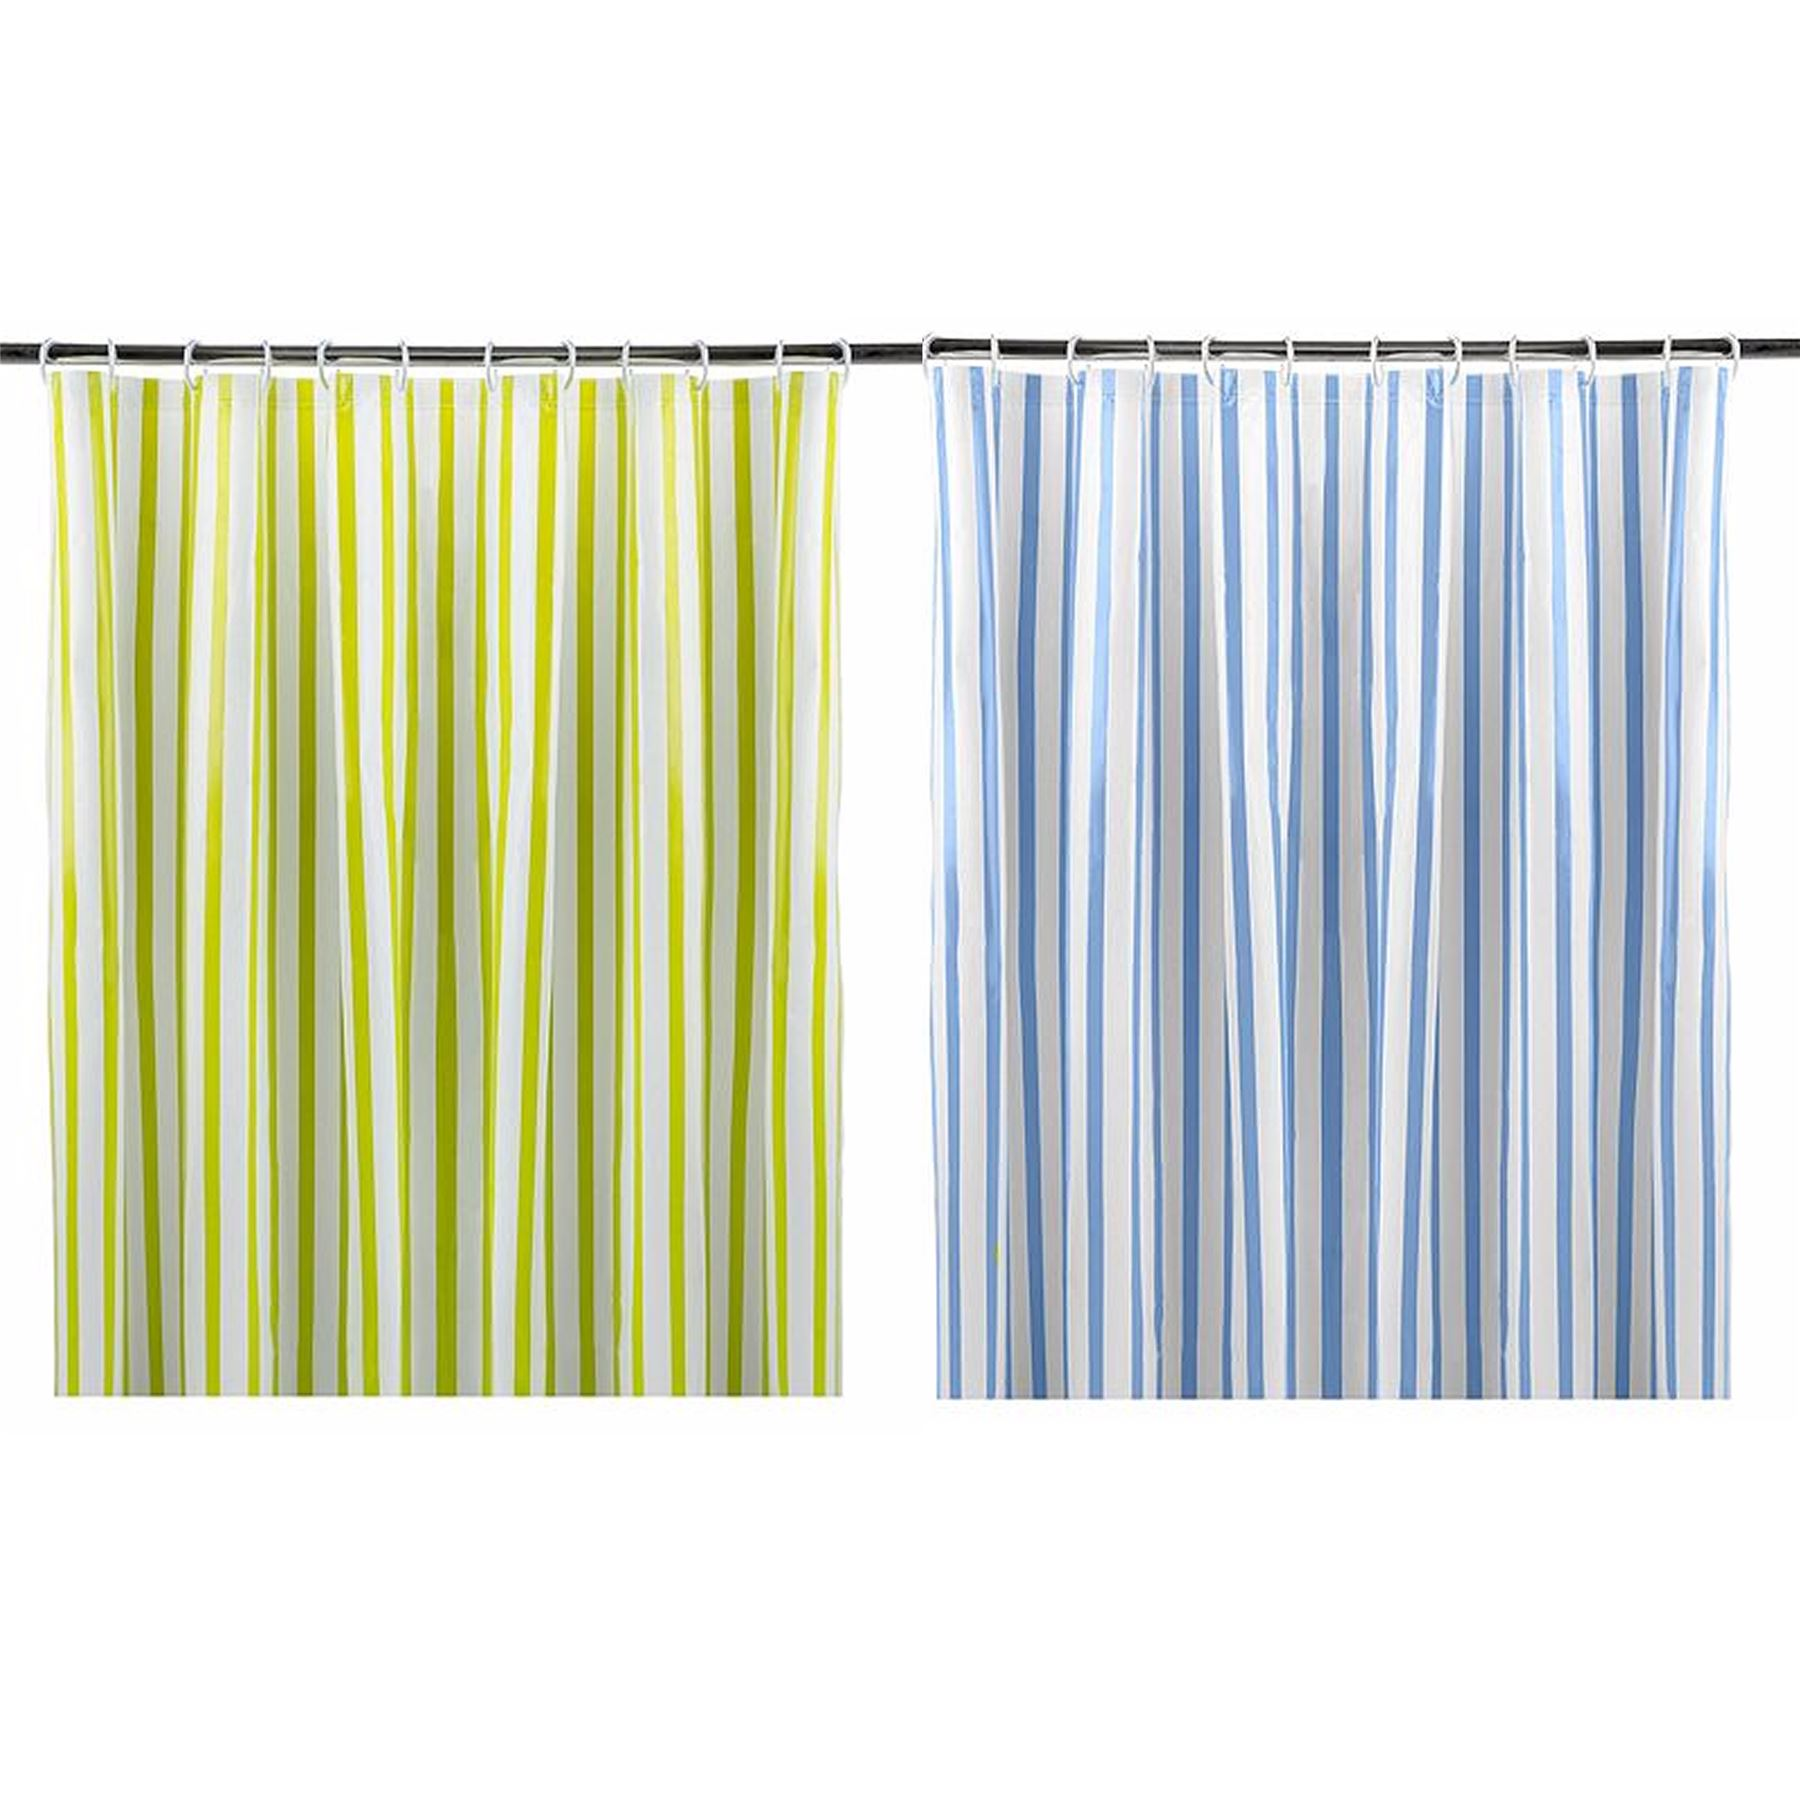 Details About Striped Shower Curtain With Eyelet Ring Top Lime Green Or Blue 180x180cm